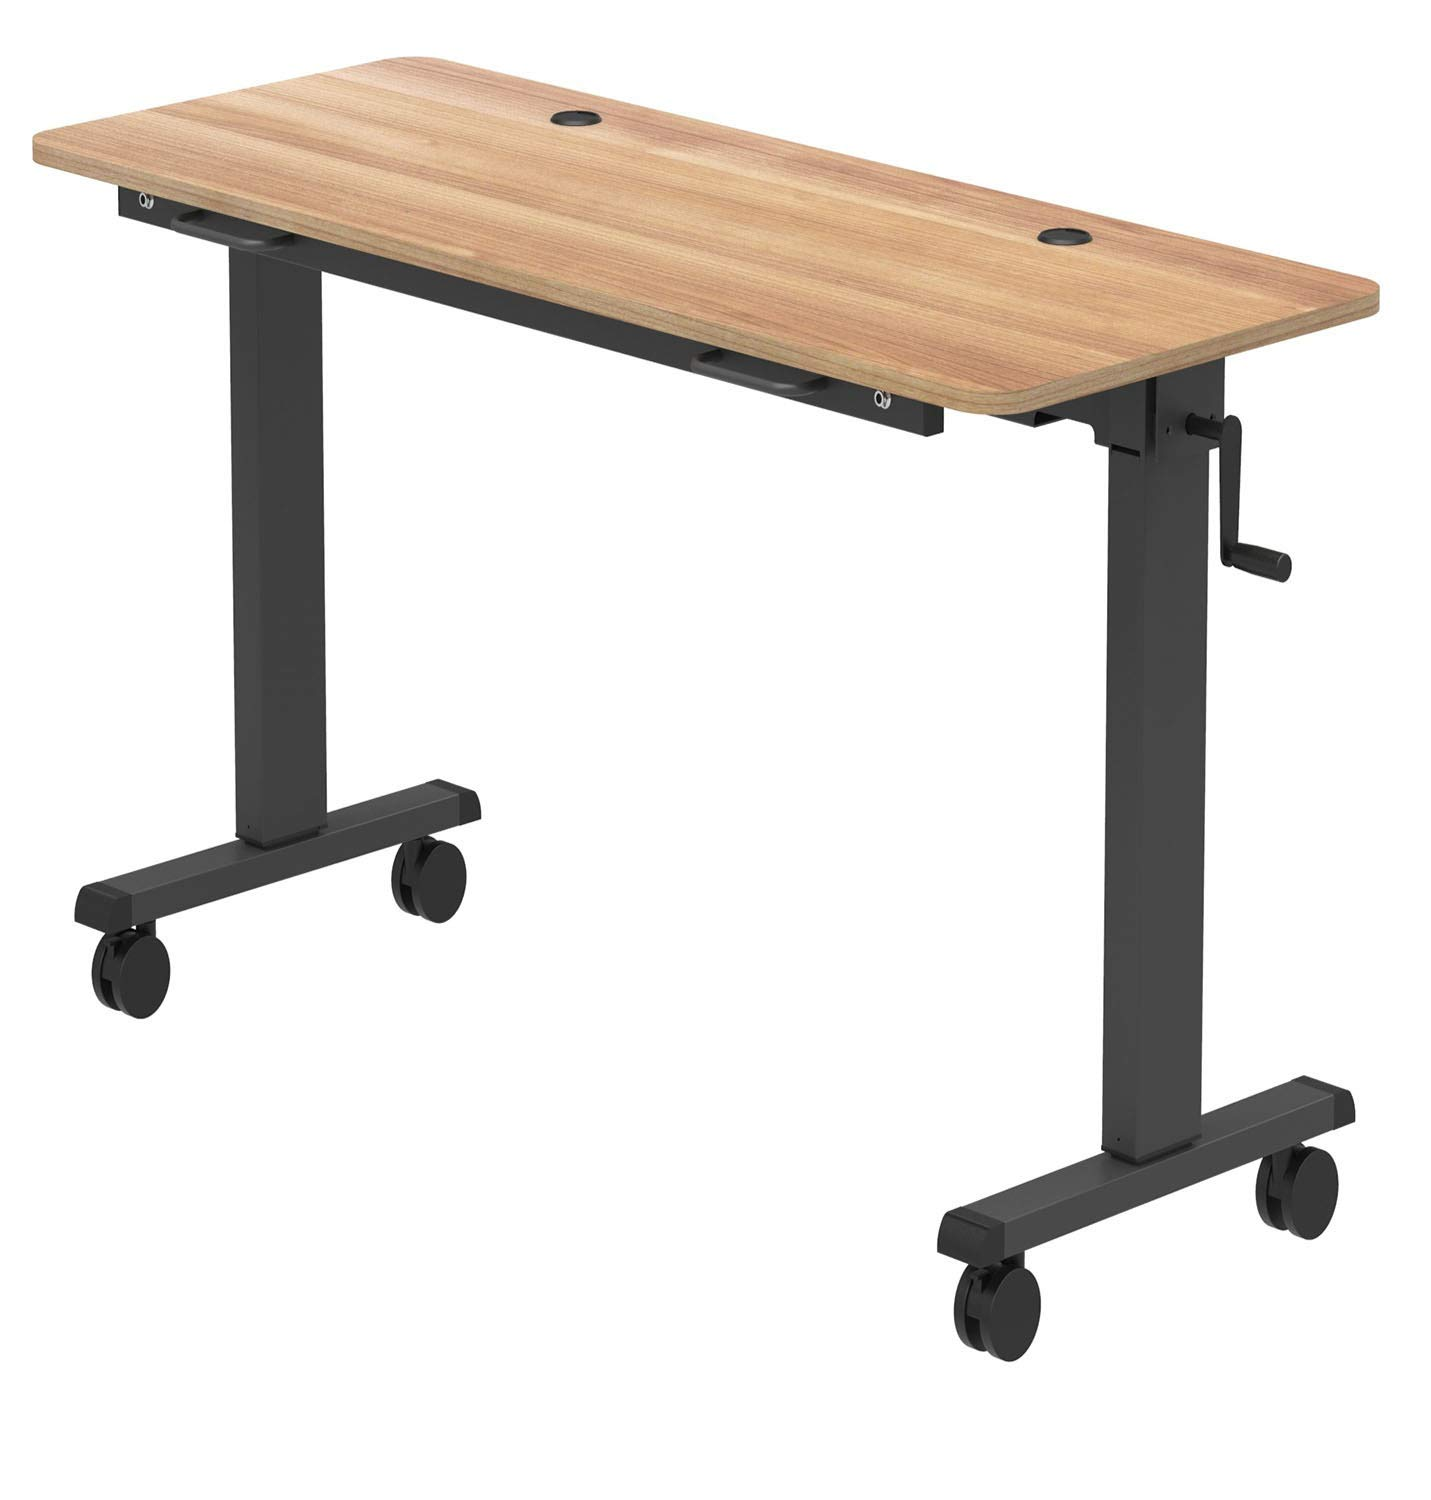 Stand Up Desk Store Adjustable Height Training Table – Flip Top Table Conveniently Nests and Rolls Away for Easy Storage (Natural Walnut, 60'')